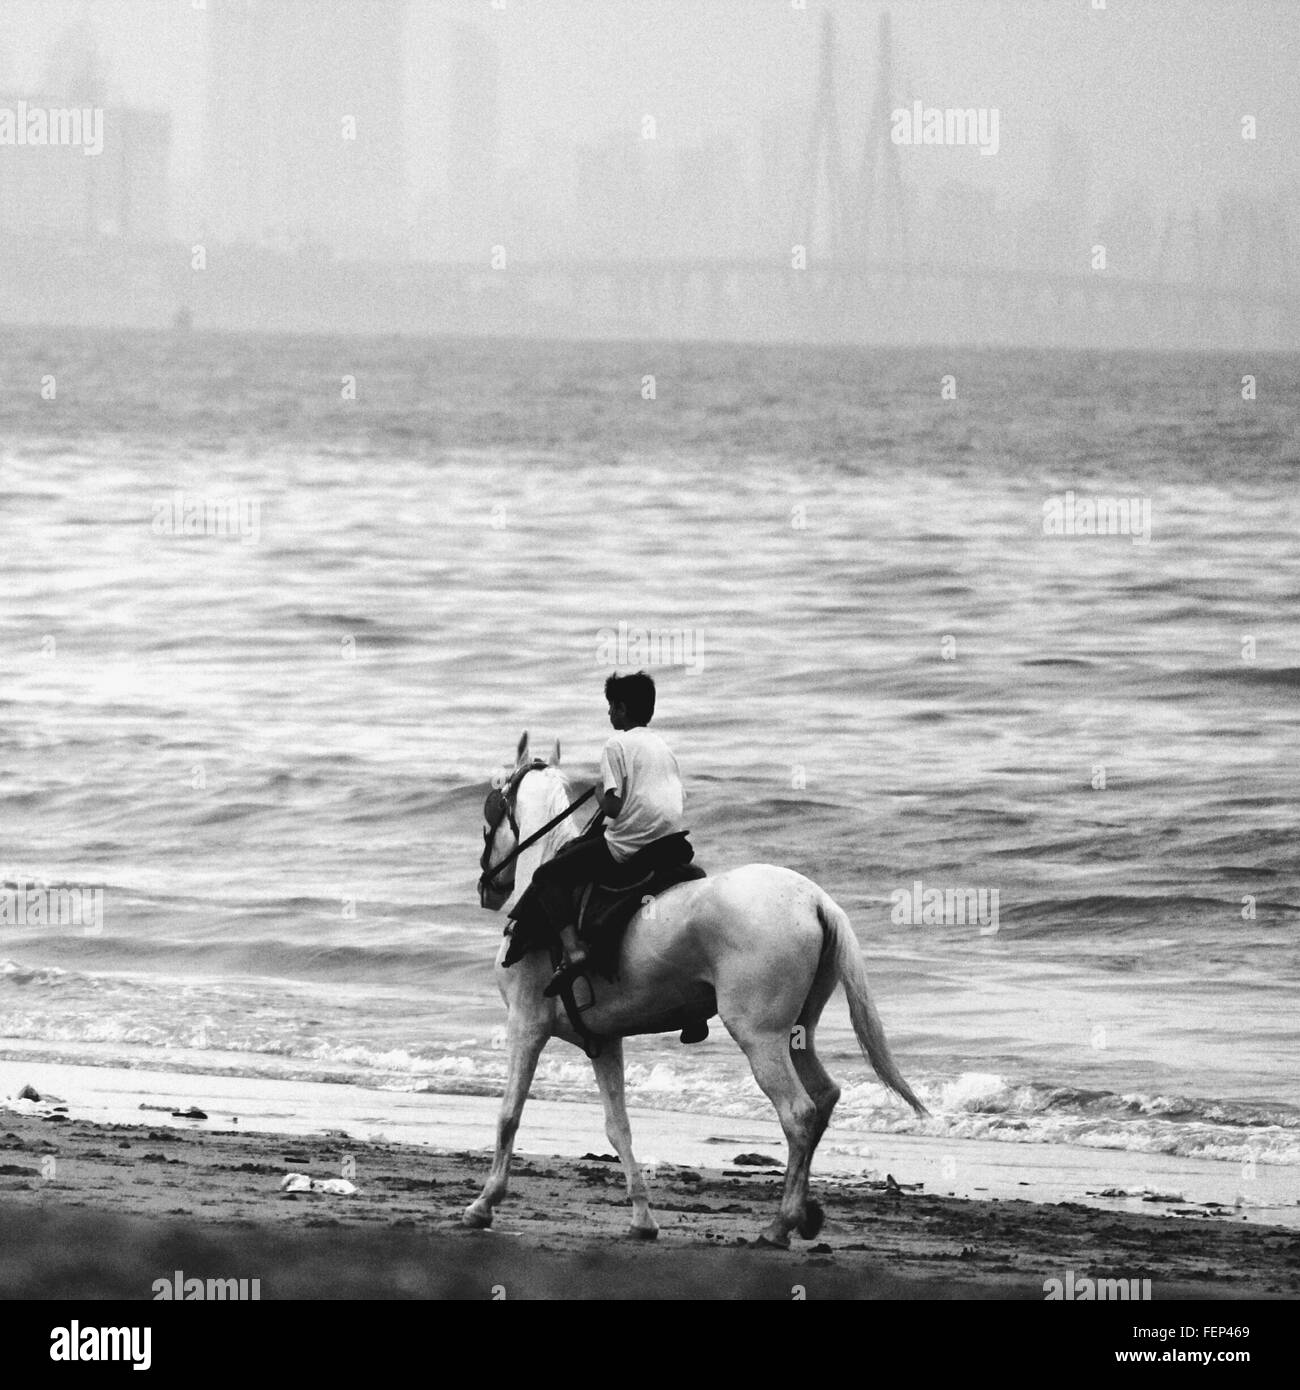 Personne Riding Horse On Beach Photo Stock